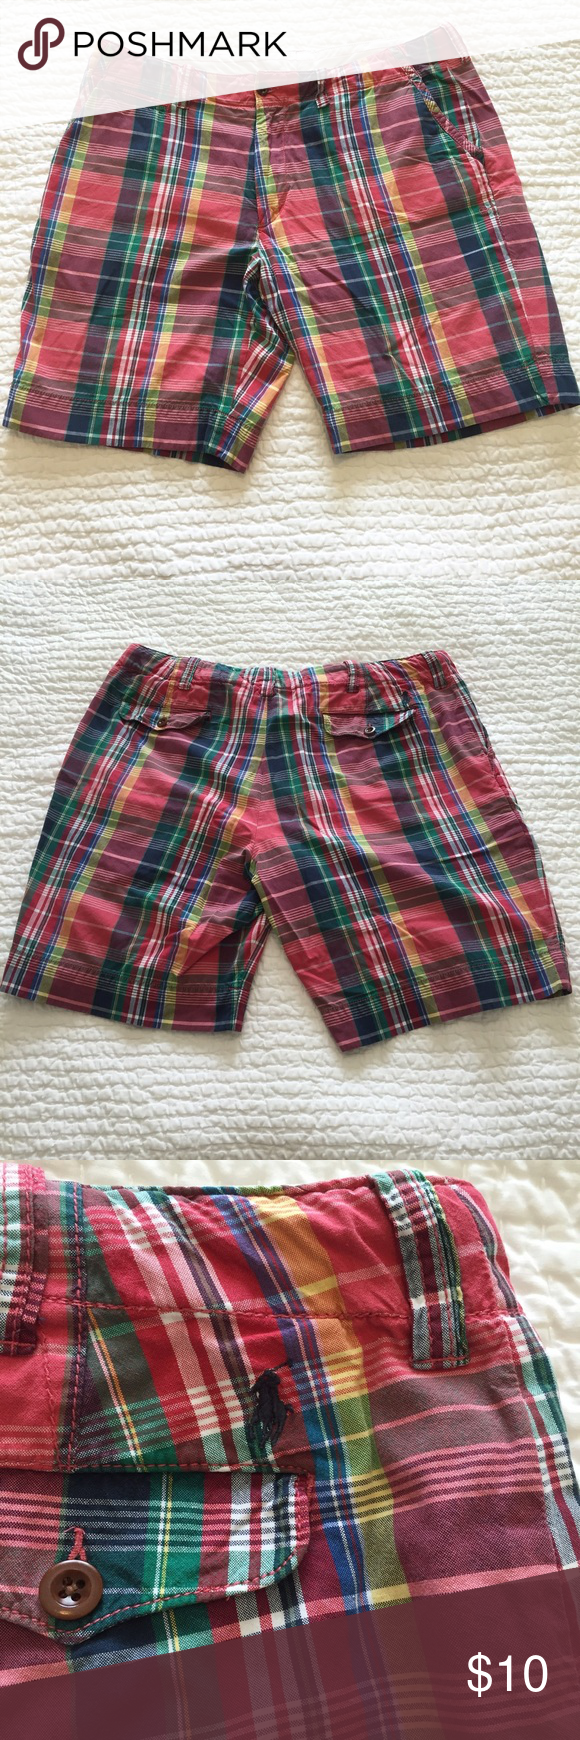 polo ralph lauren plaid shorts polo store near me